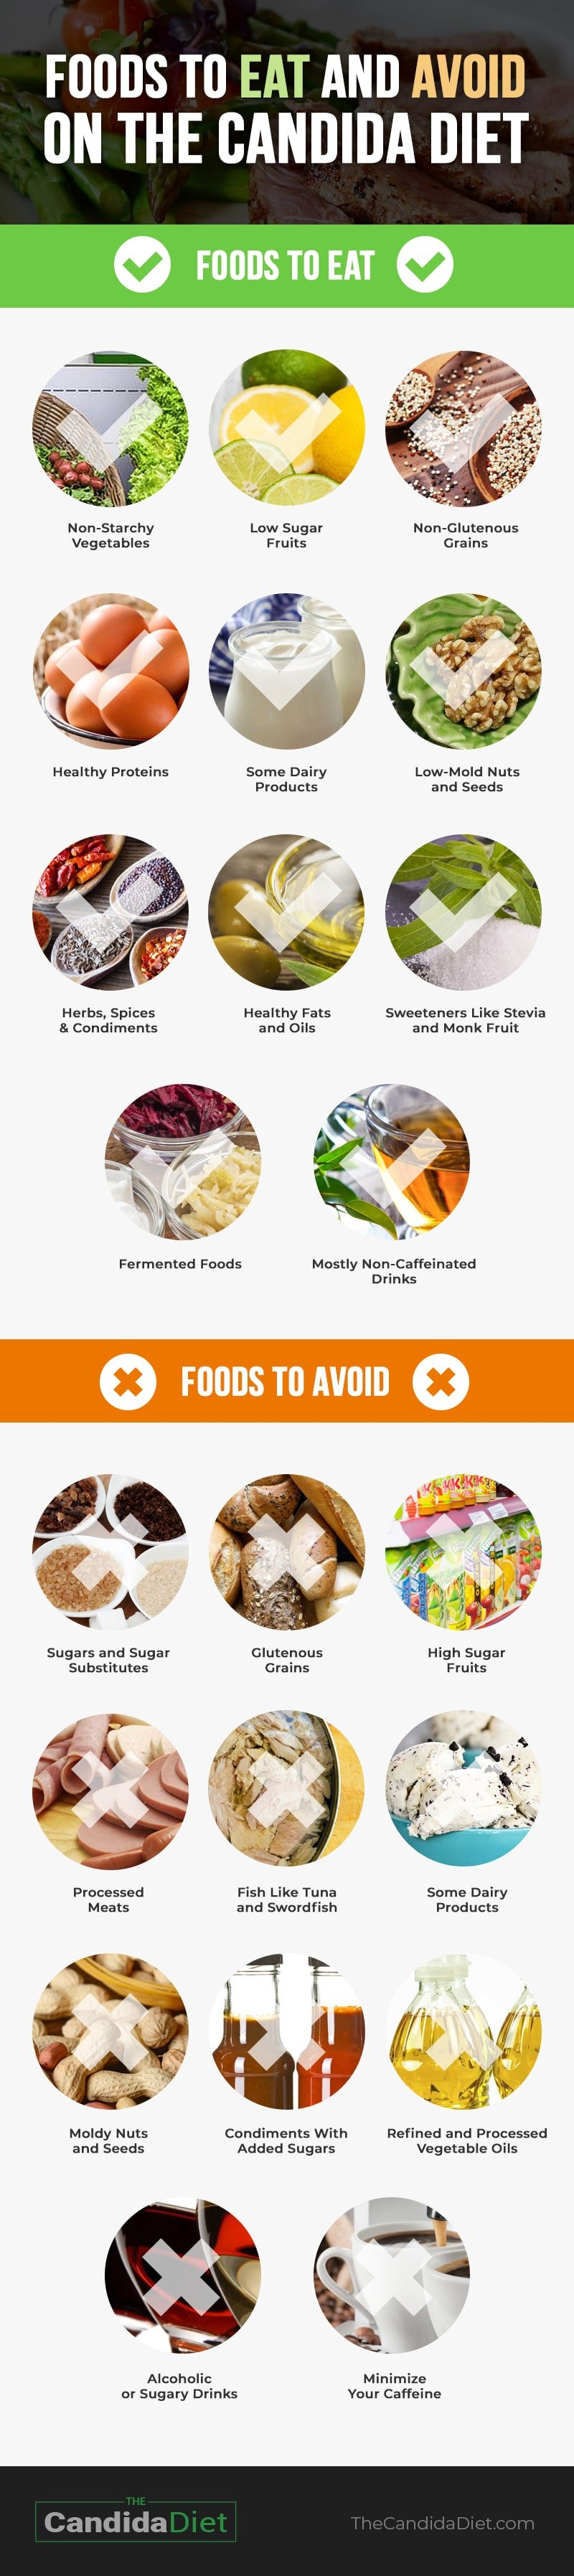 Foods to eat and avoid on the Candida diet